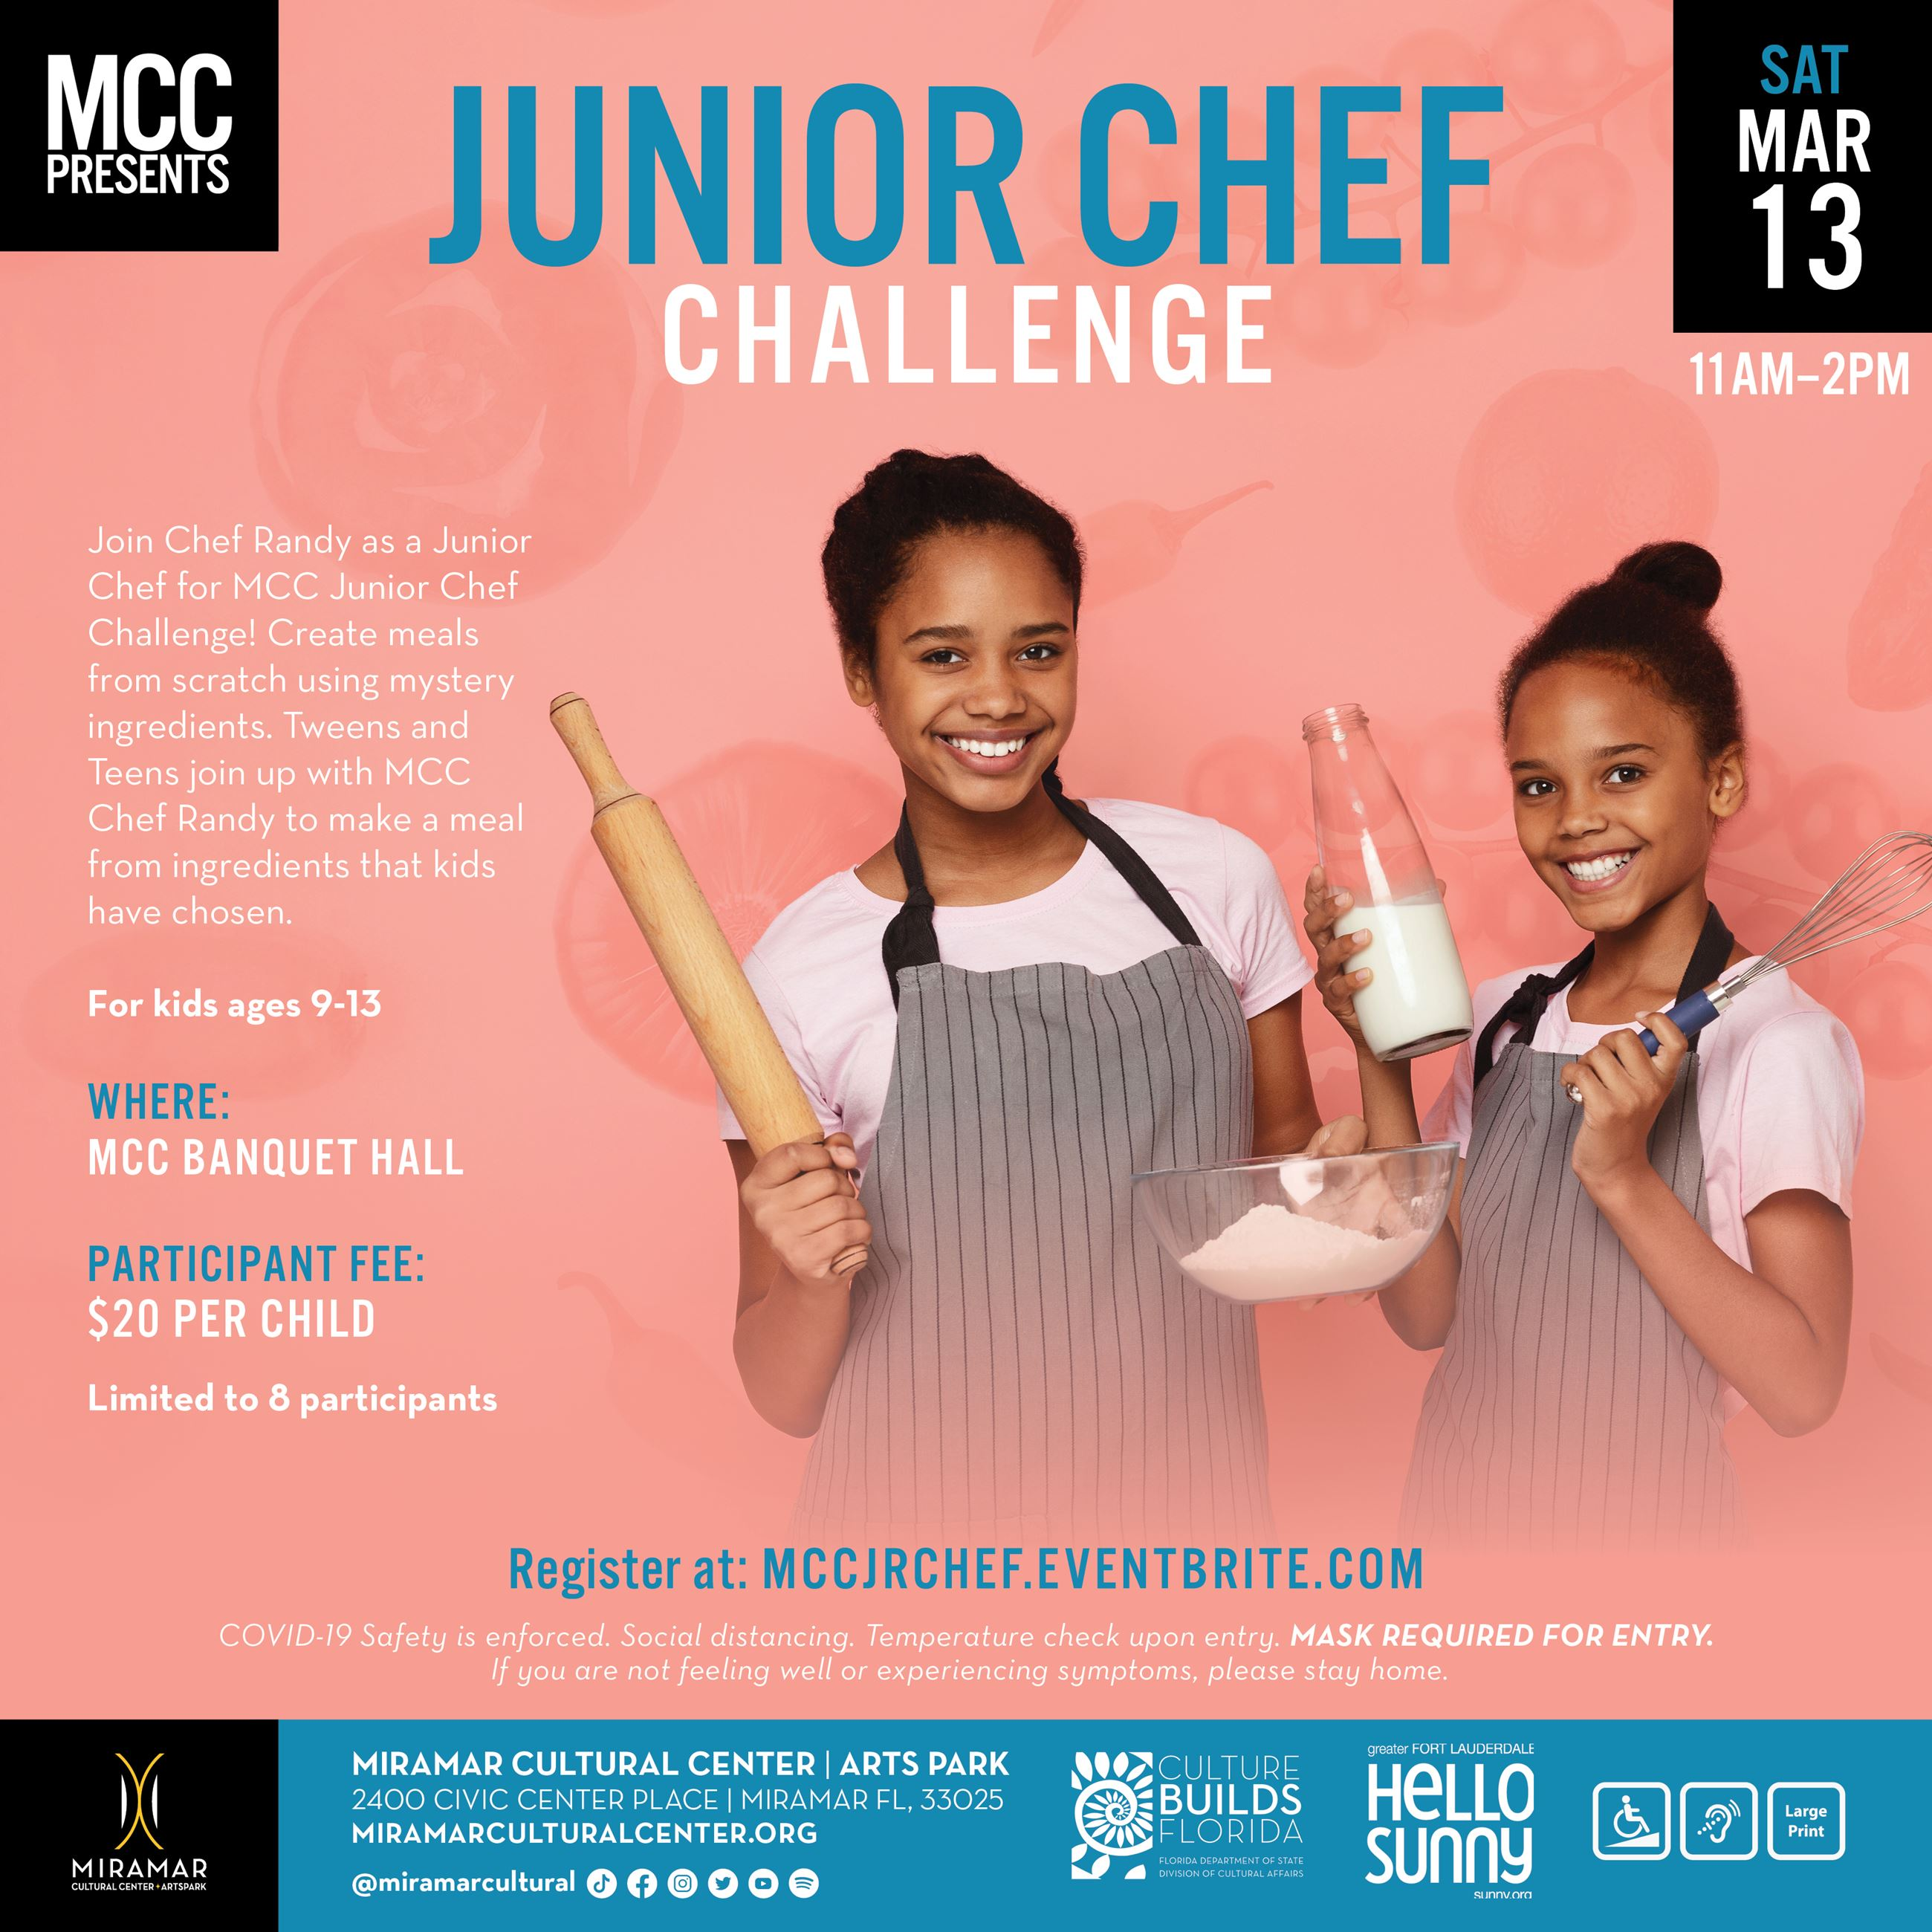 MCCpresents-JuniorChefChallenge-800x800